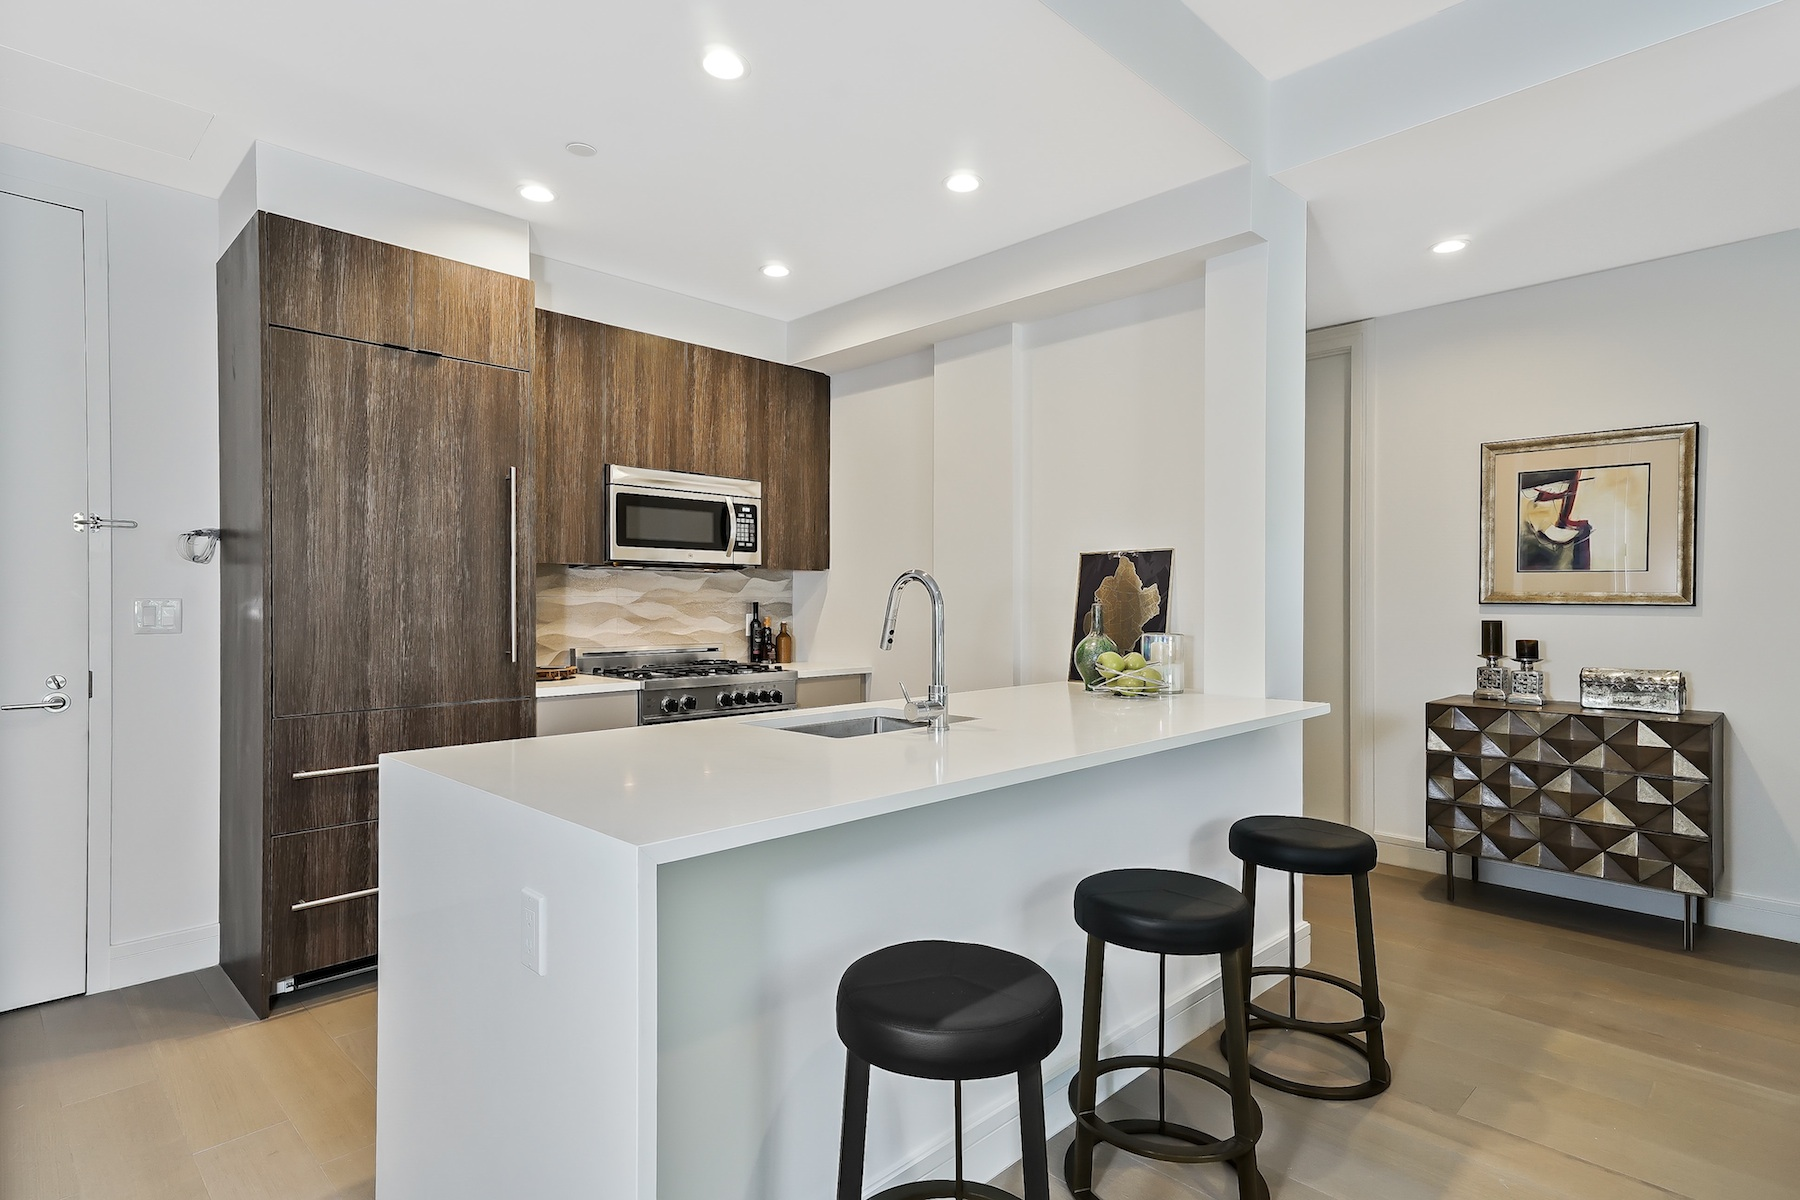 Additional photo for property listing at Stanton on Sixth 695 Sixth Avenue, 3M Brooklyn, New York 11215 United States